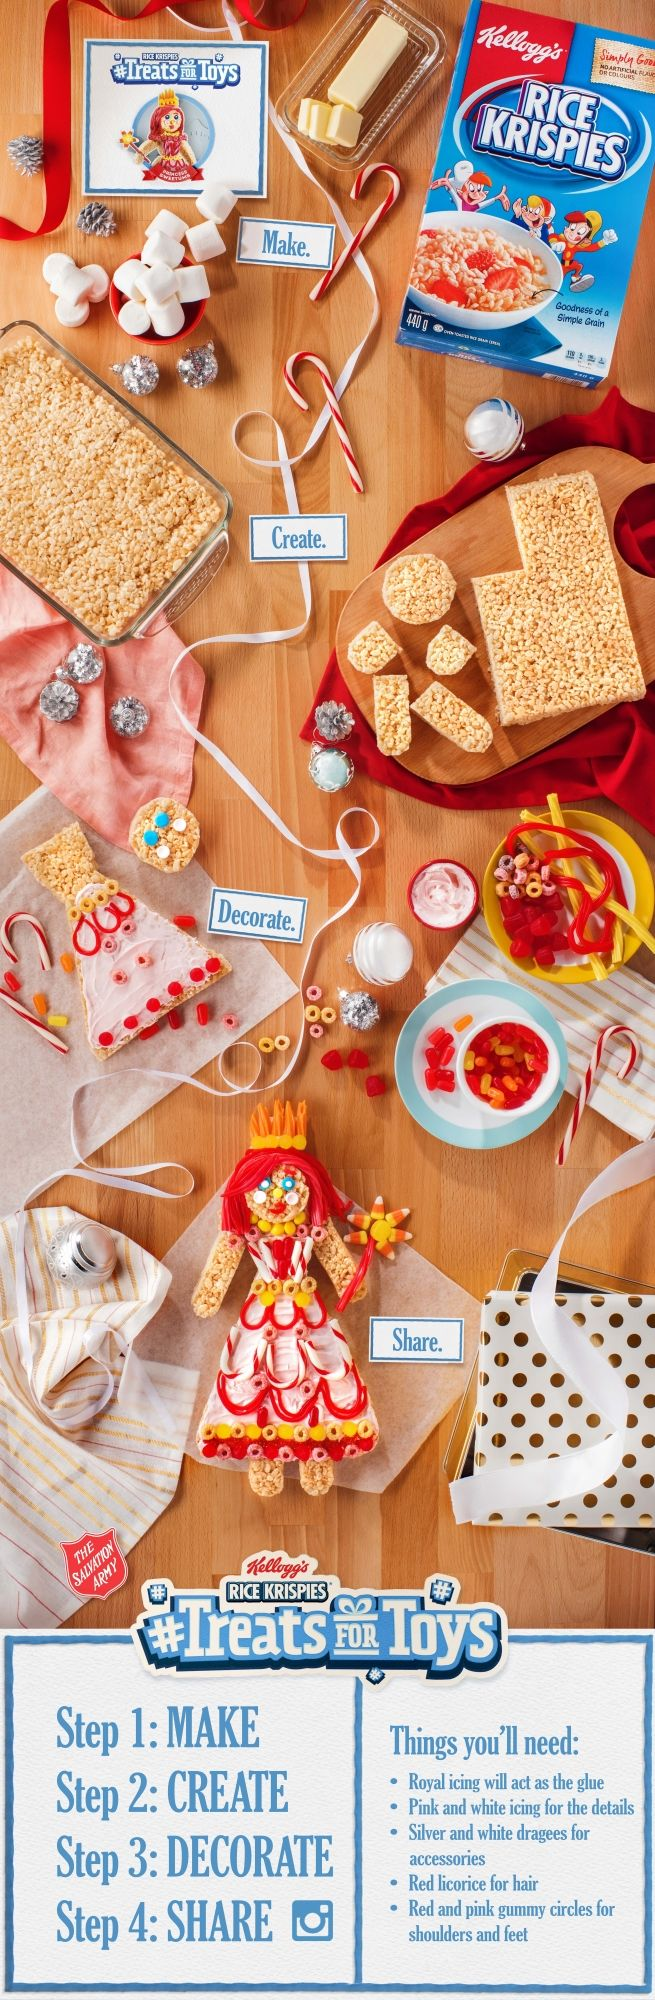 Make your Rice Krispies look like royalty! In just a few steps, you can start a new baking tradition. Share your creations using #TreatsforToys to help donate toys to less fortunate children.